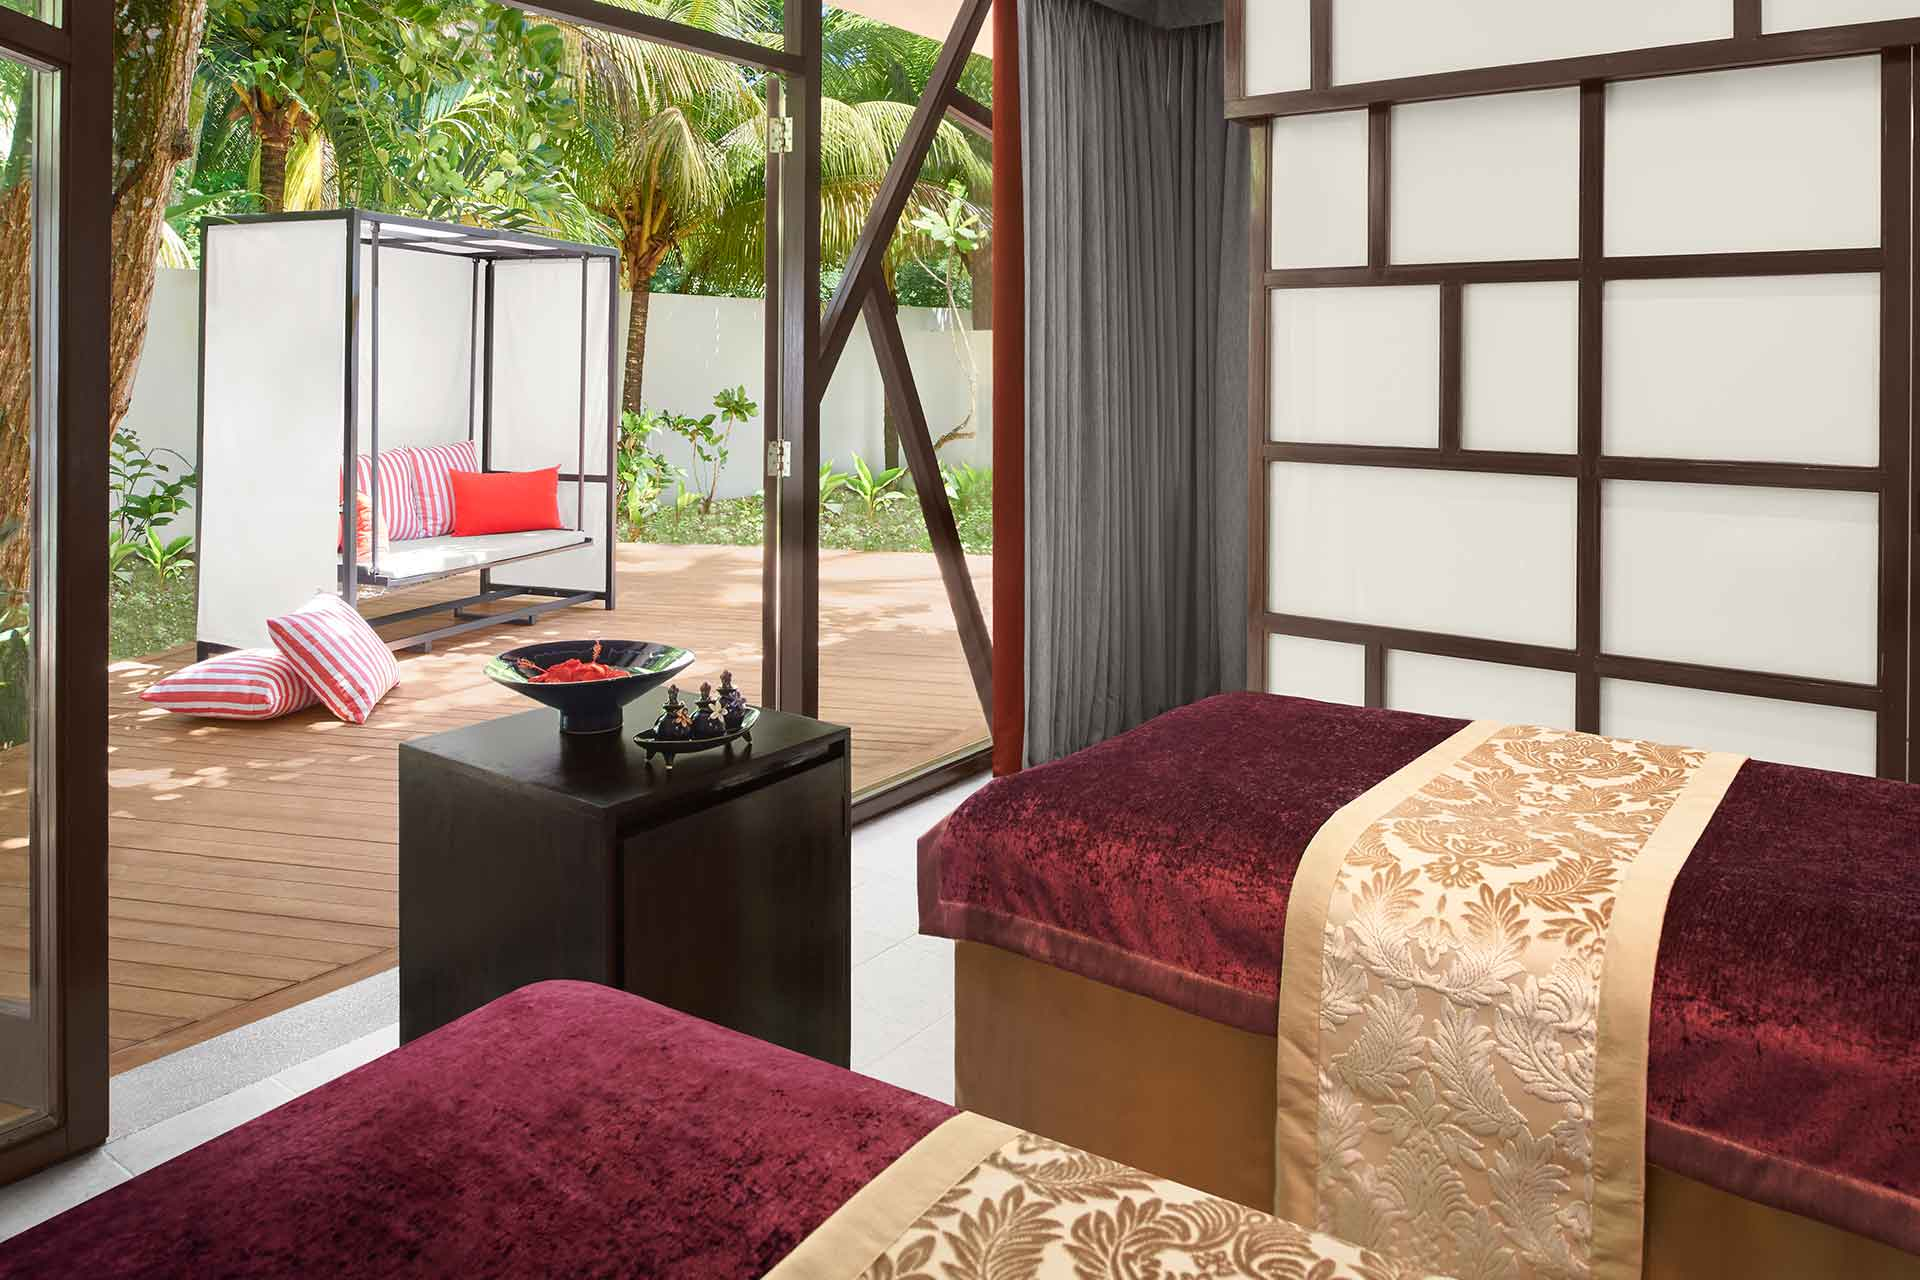 AVANI Spa Treatment room, Seychelles hotel images